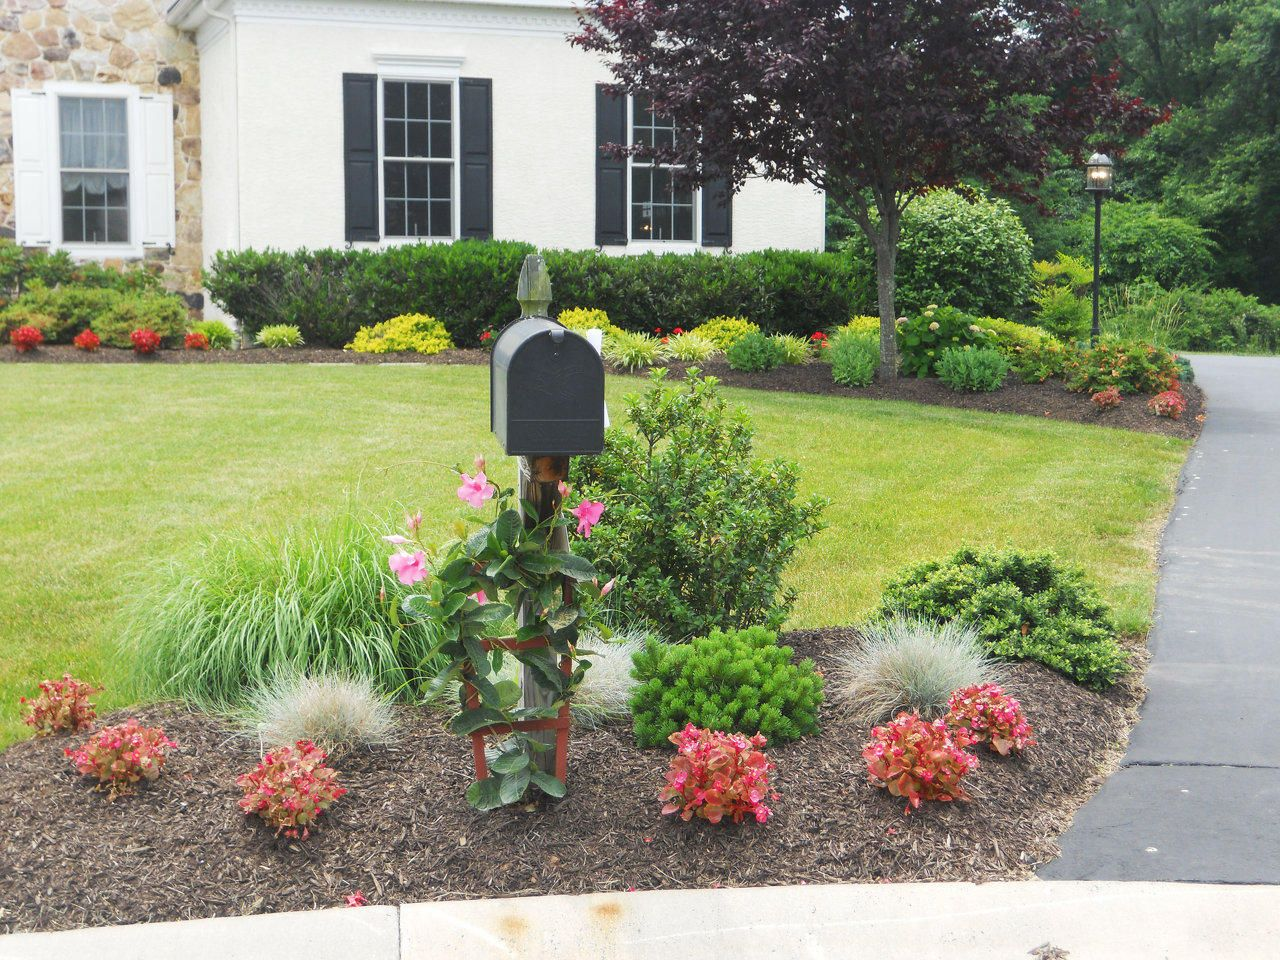 mailbox landscaping - Google Search | Hmmmm! I can see ...